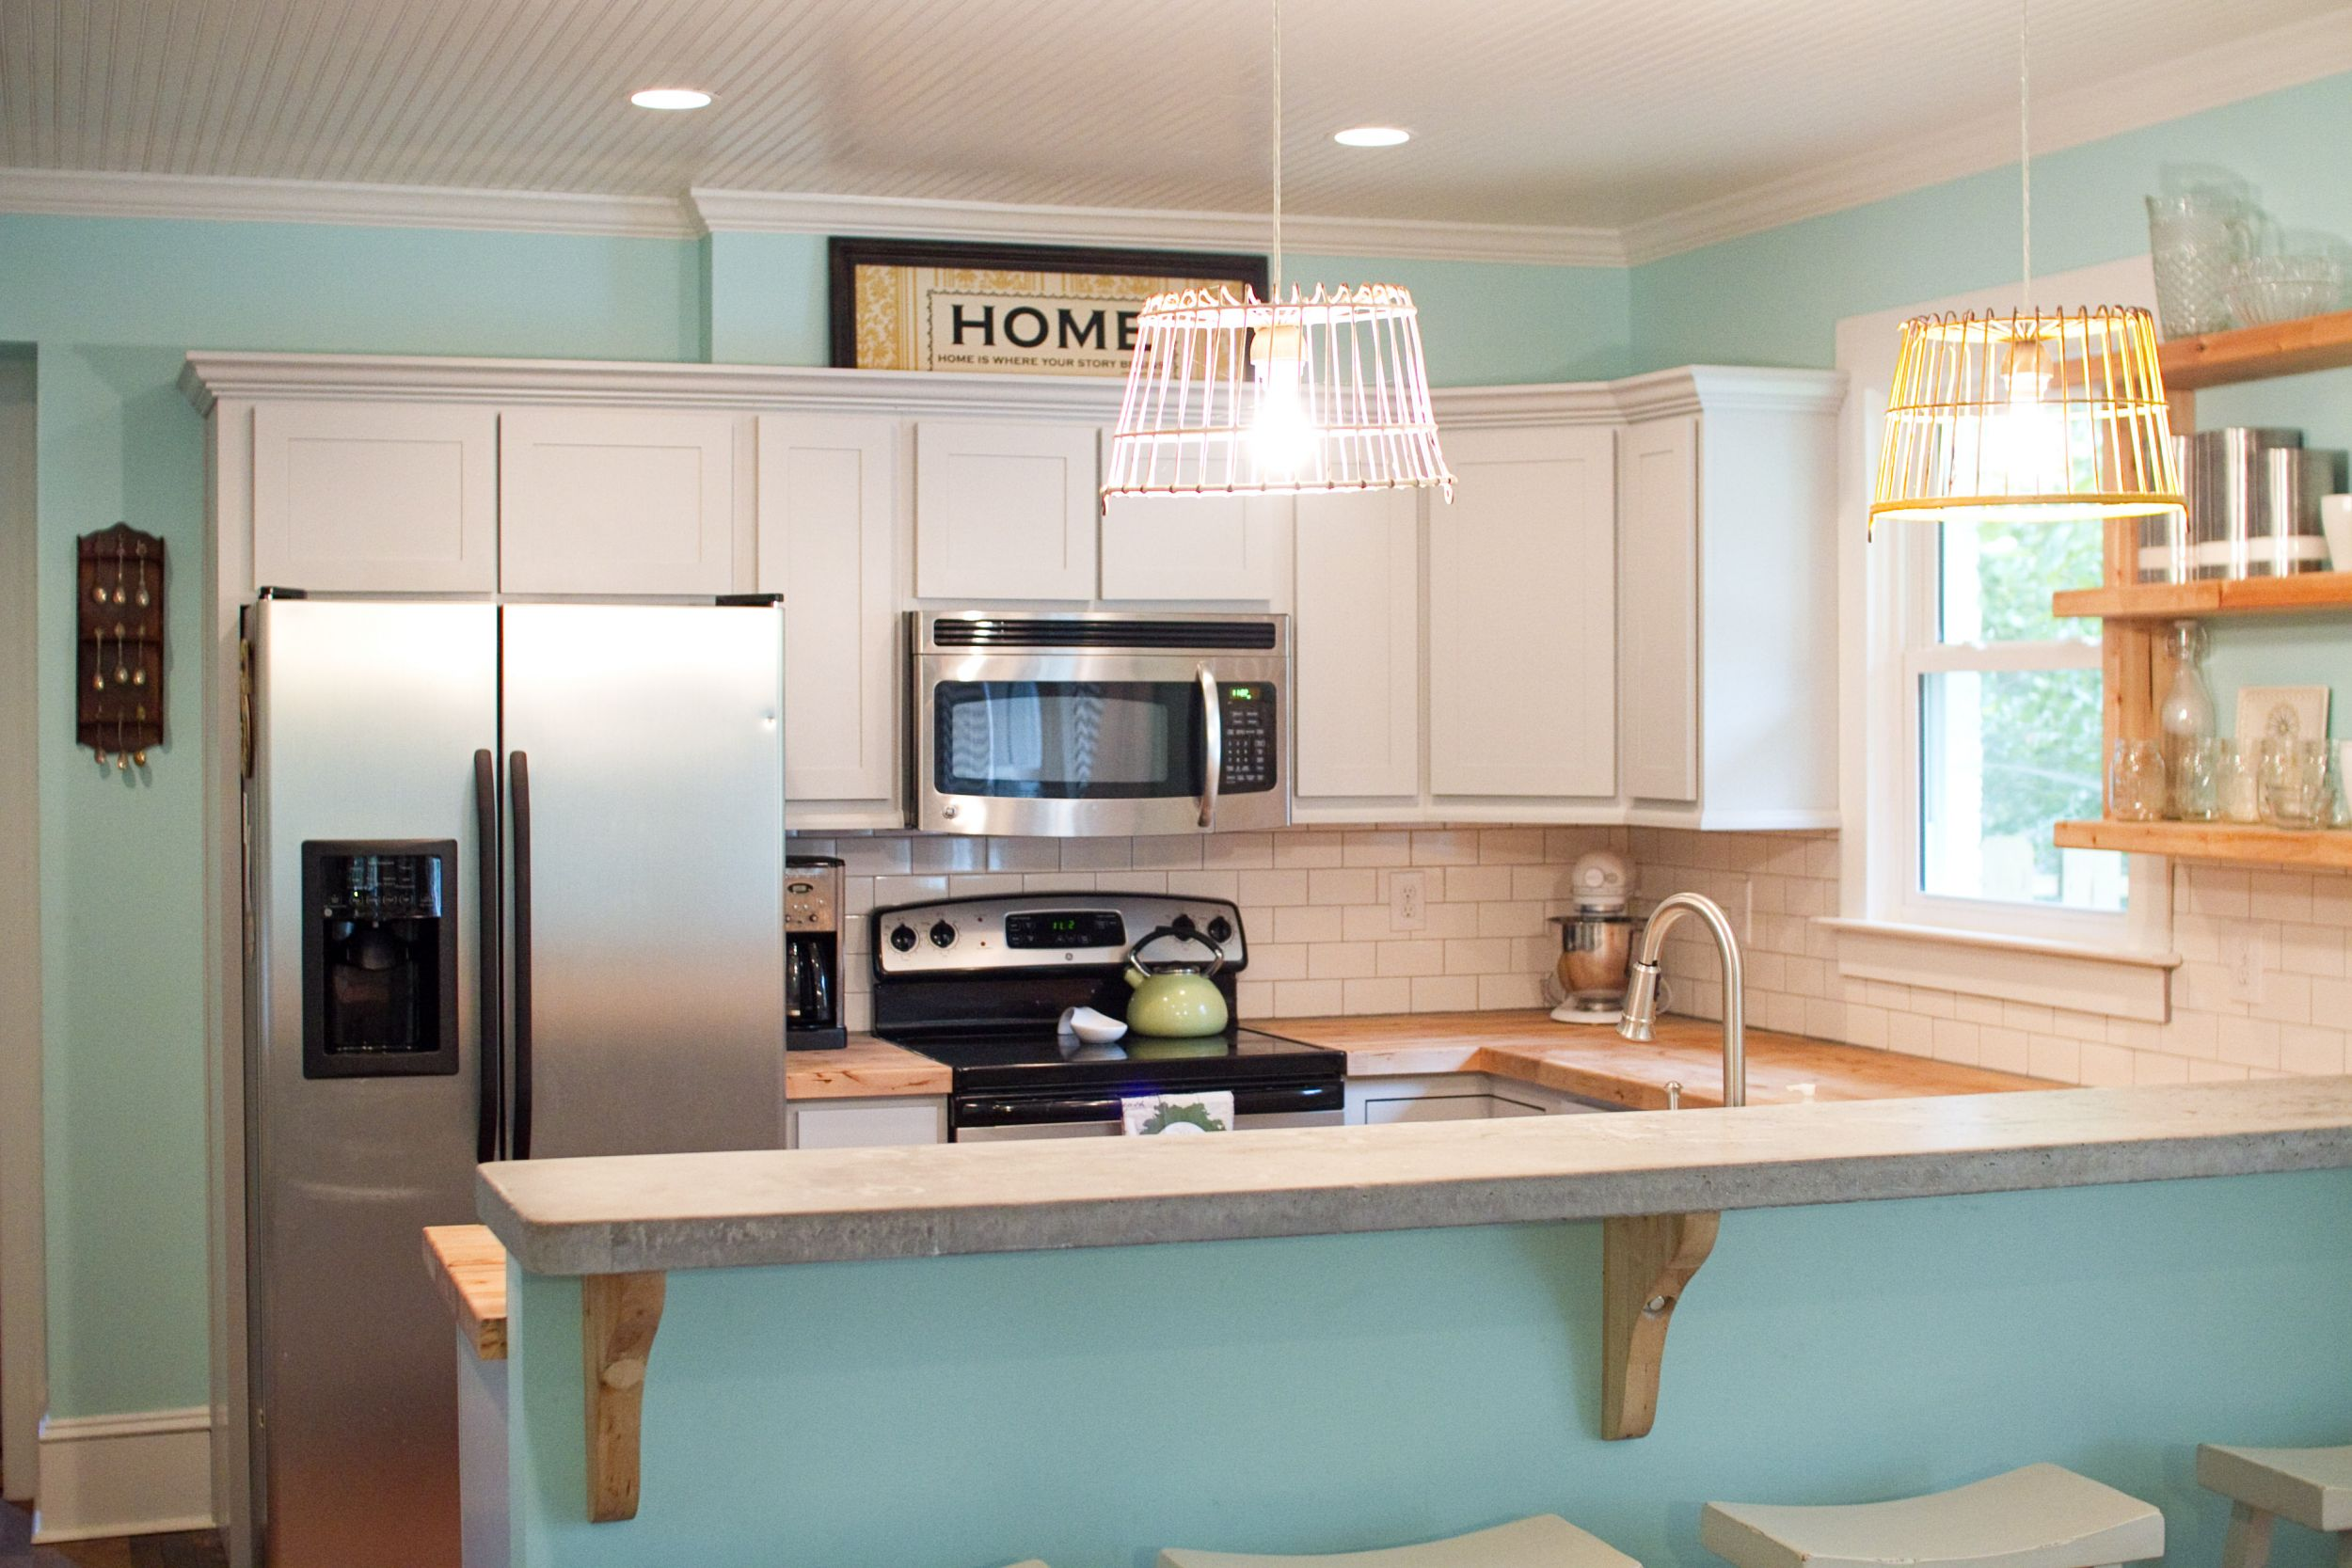 Room decorating before and after makeovers for How to remodel a kitchen